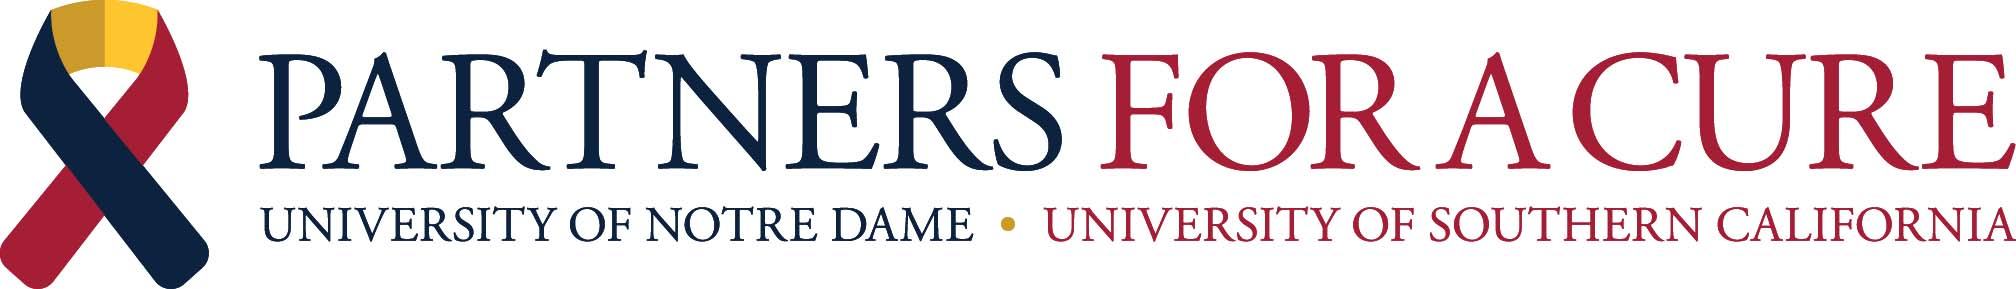 Nd Usc Challenge Logo Transparent Background